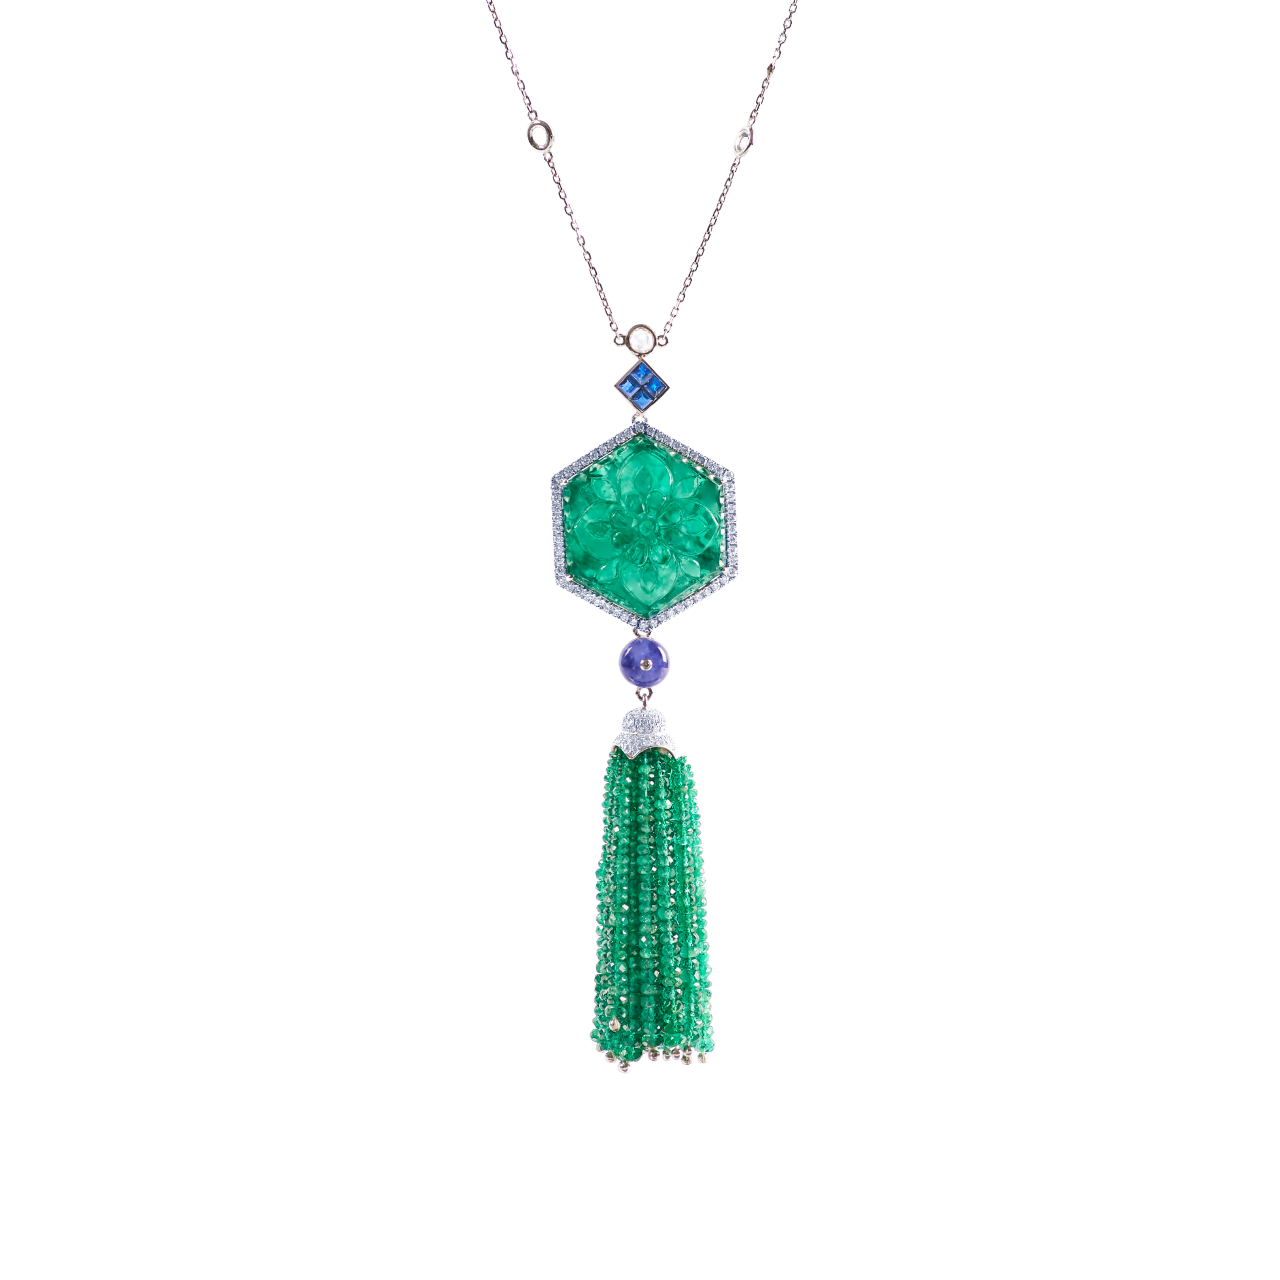 EGL 尚比亞雕刻祖母綠與藍寶墜鍊 95.63克拉